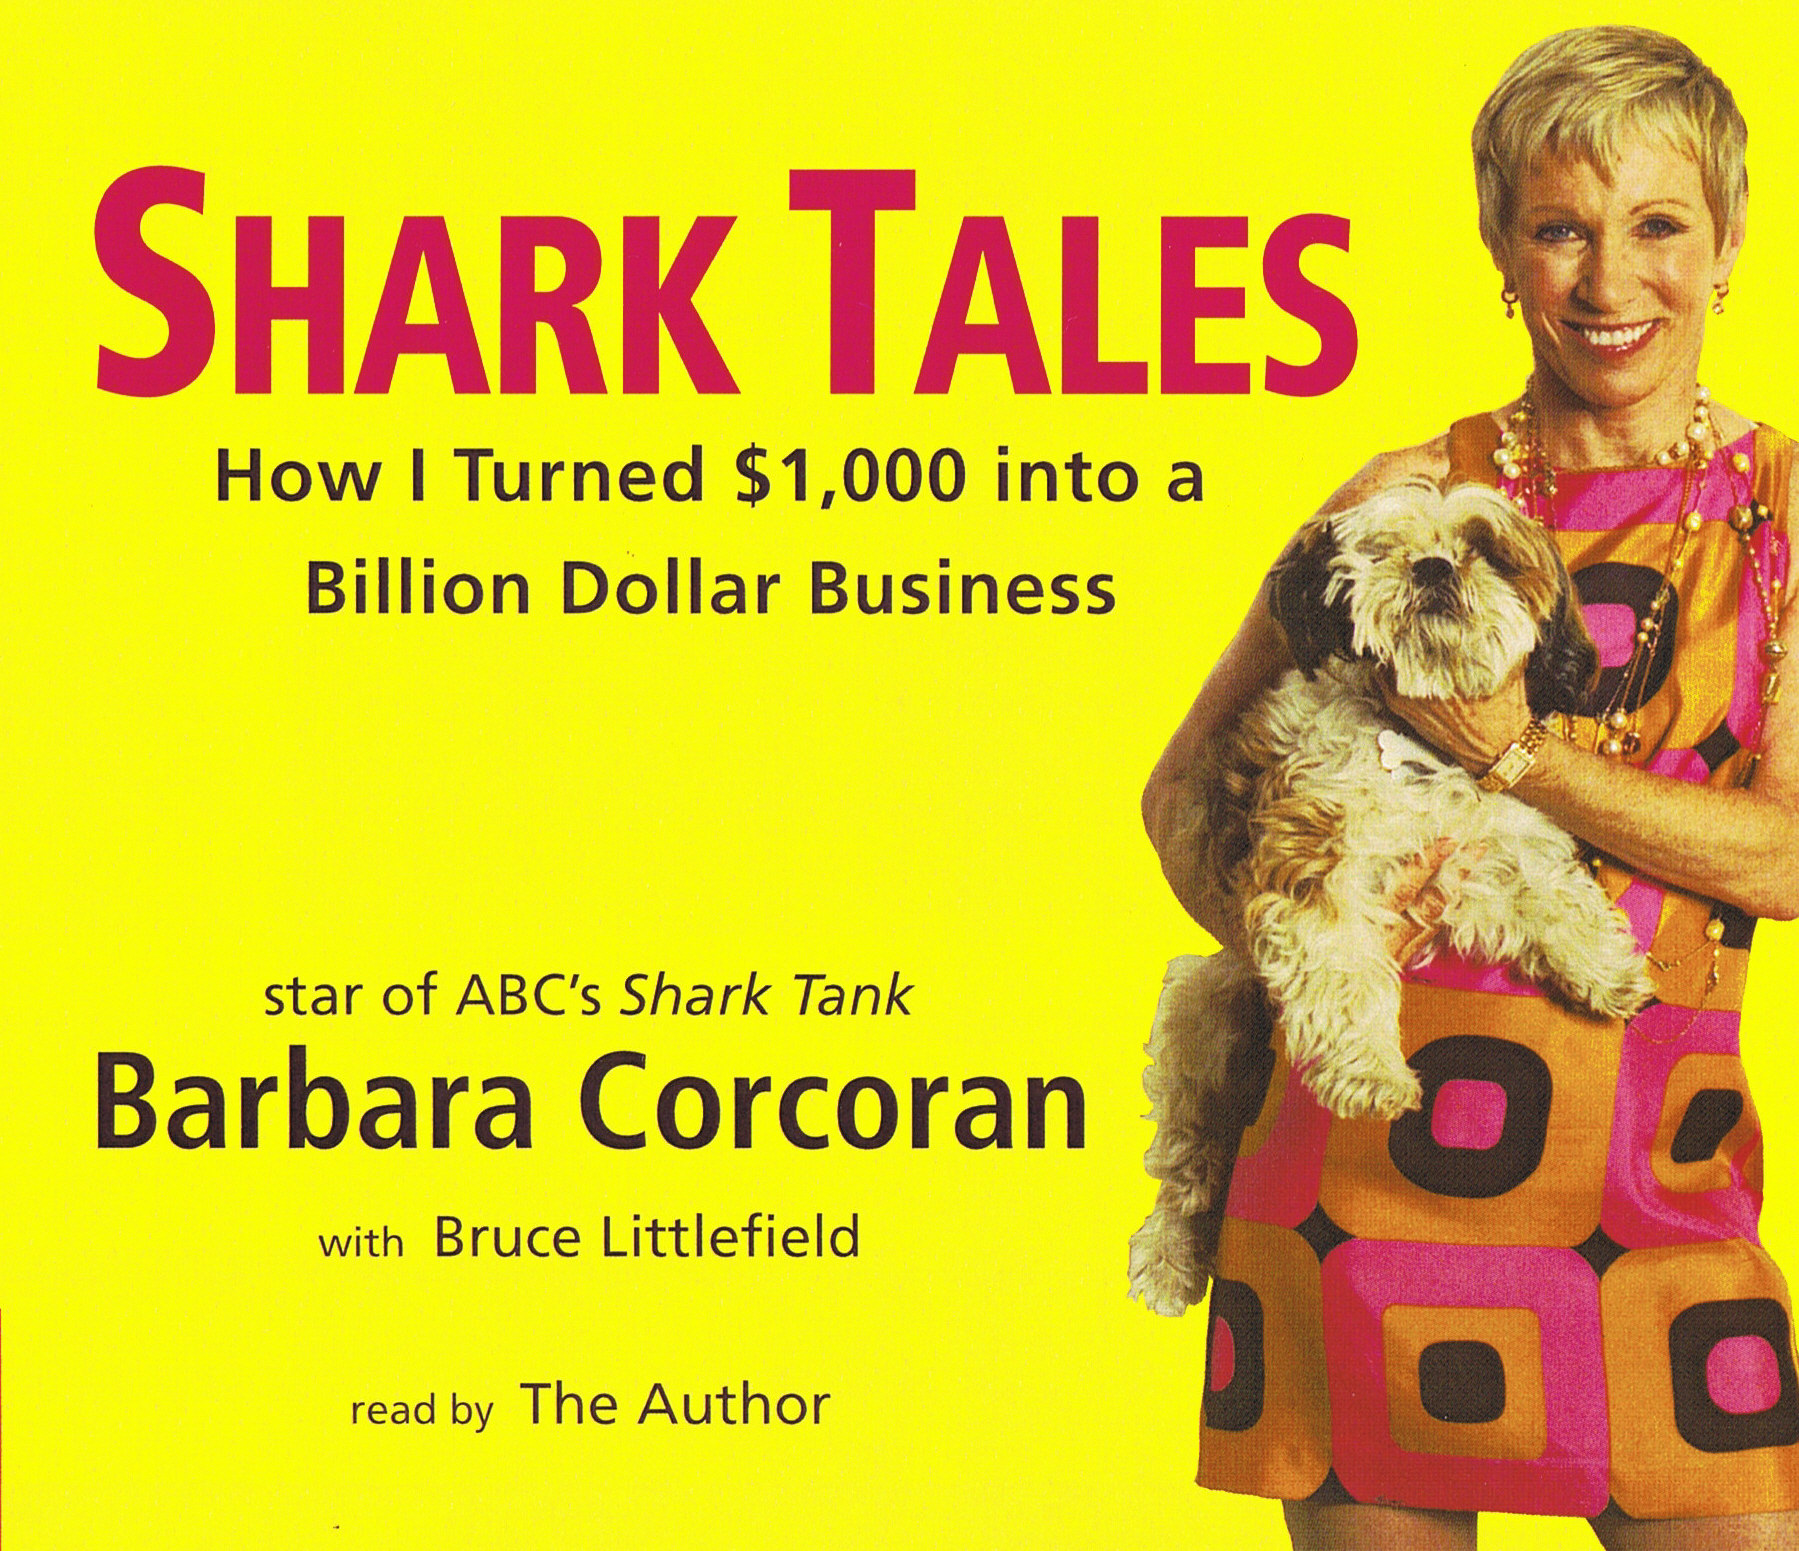 Shark Tales: How I Turned $1,000 into a Billion Dollar Business [DD]